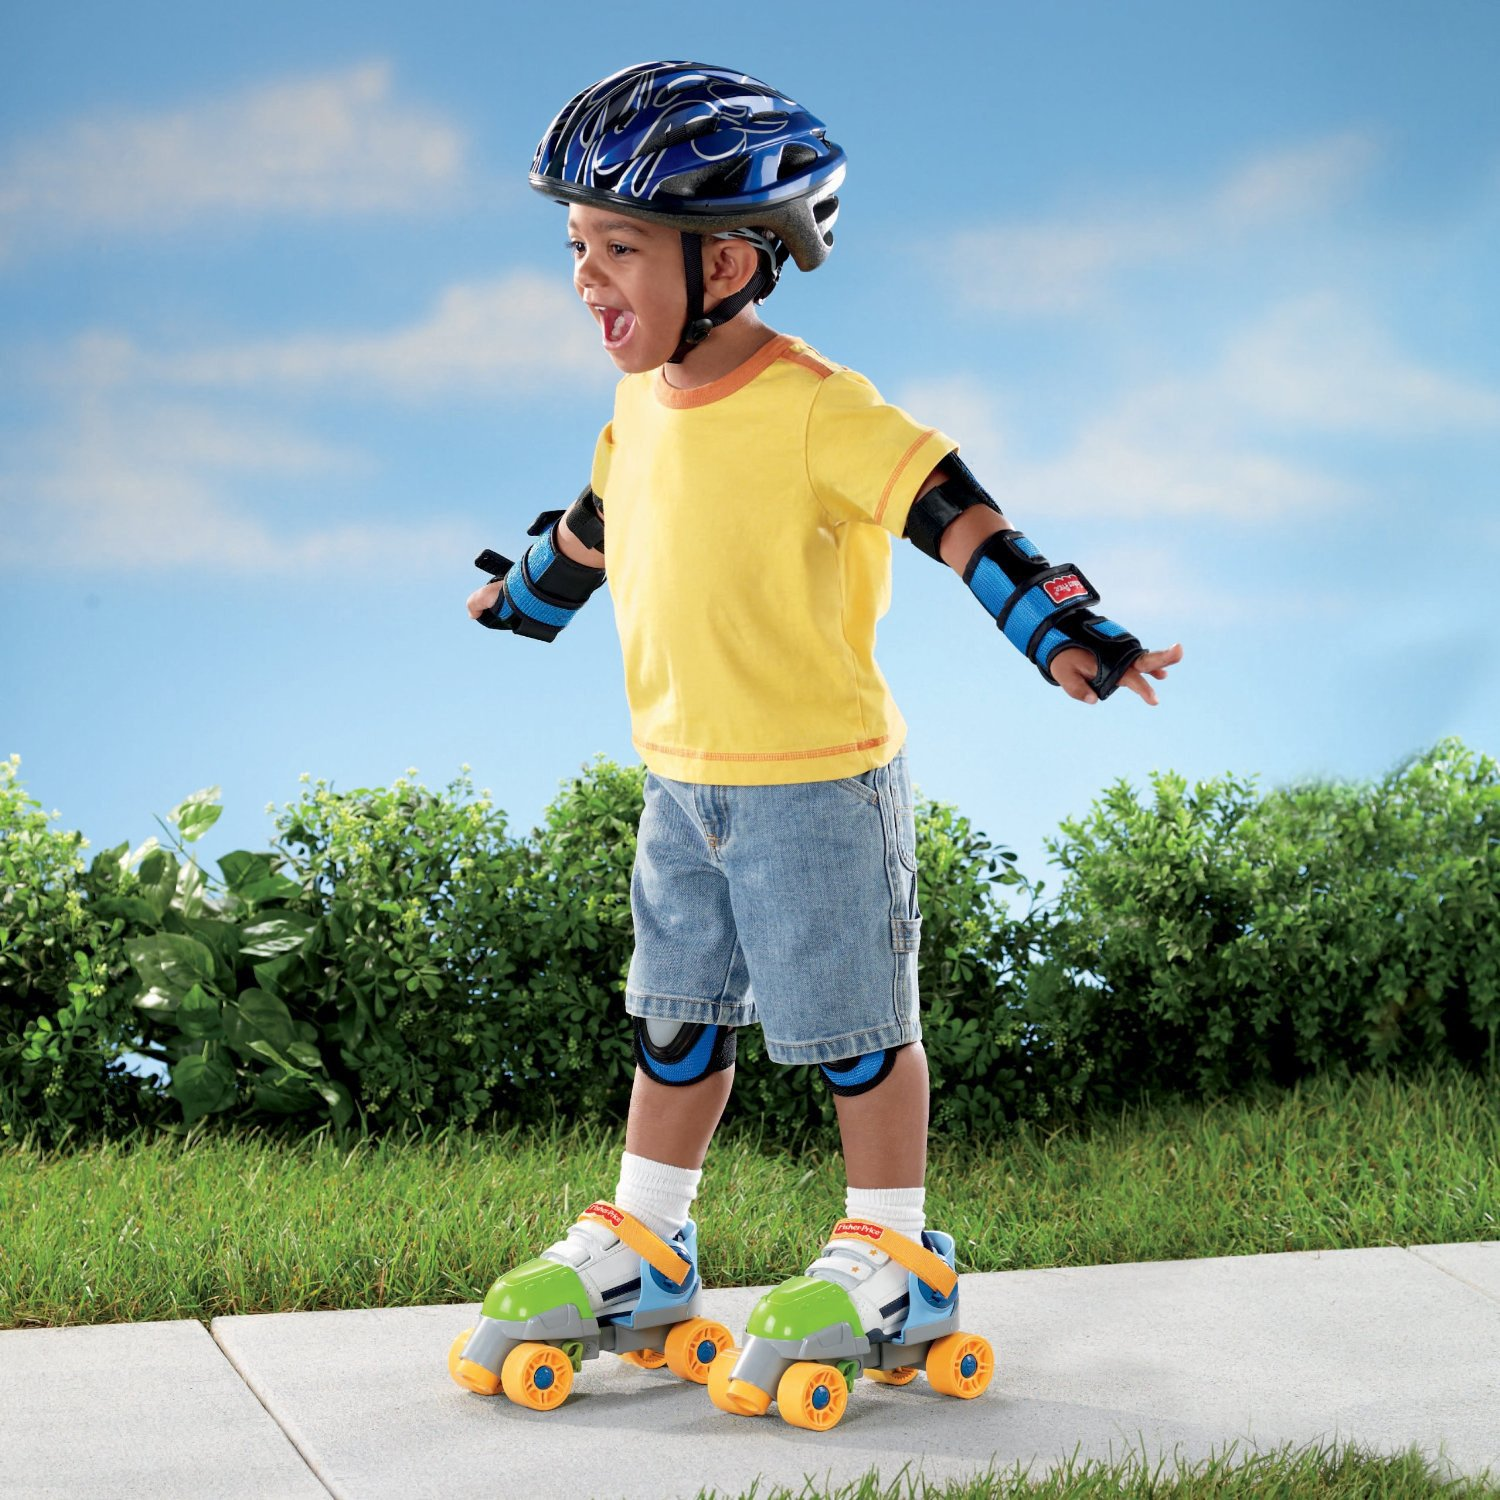 Roller skates under 20 dollars - Amazon Com Fisher Price Grow With Me 1 2 3 Roller Skates Green Toys Games